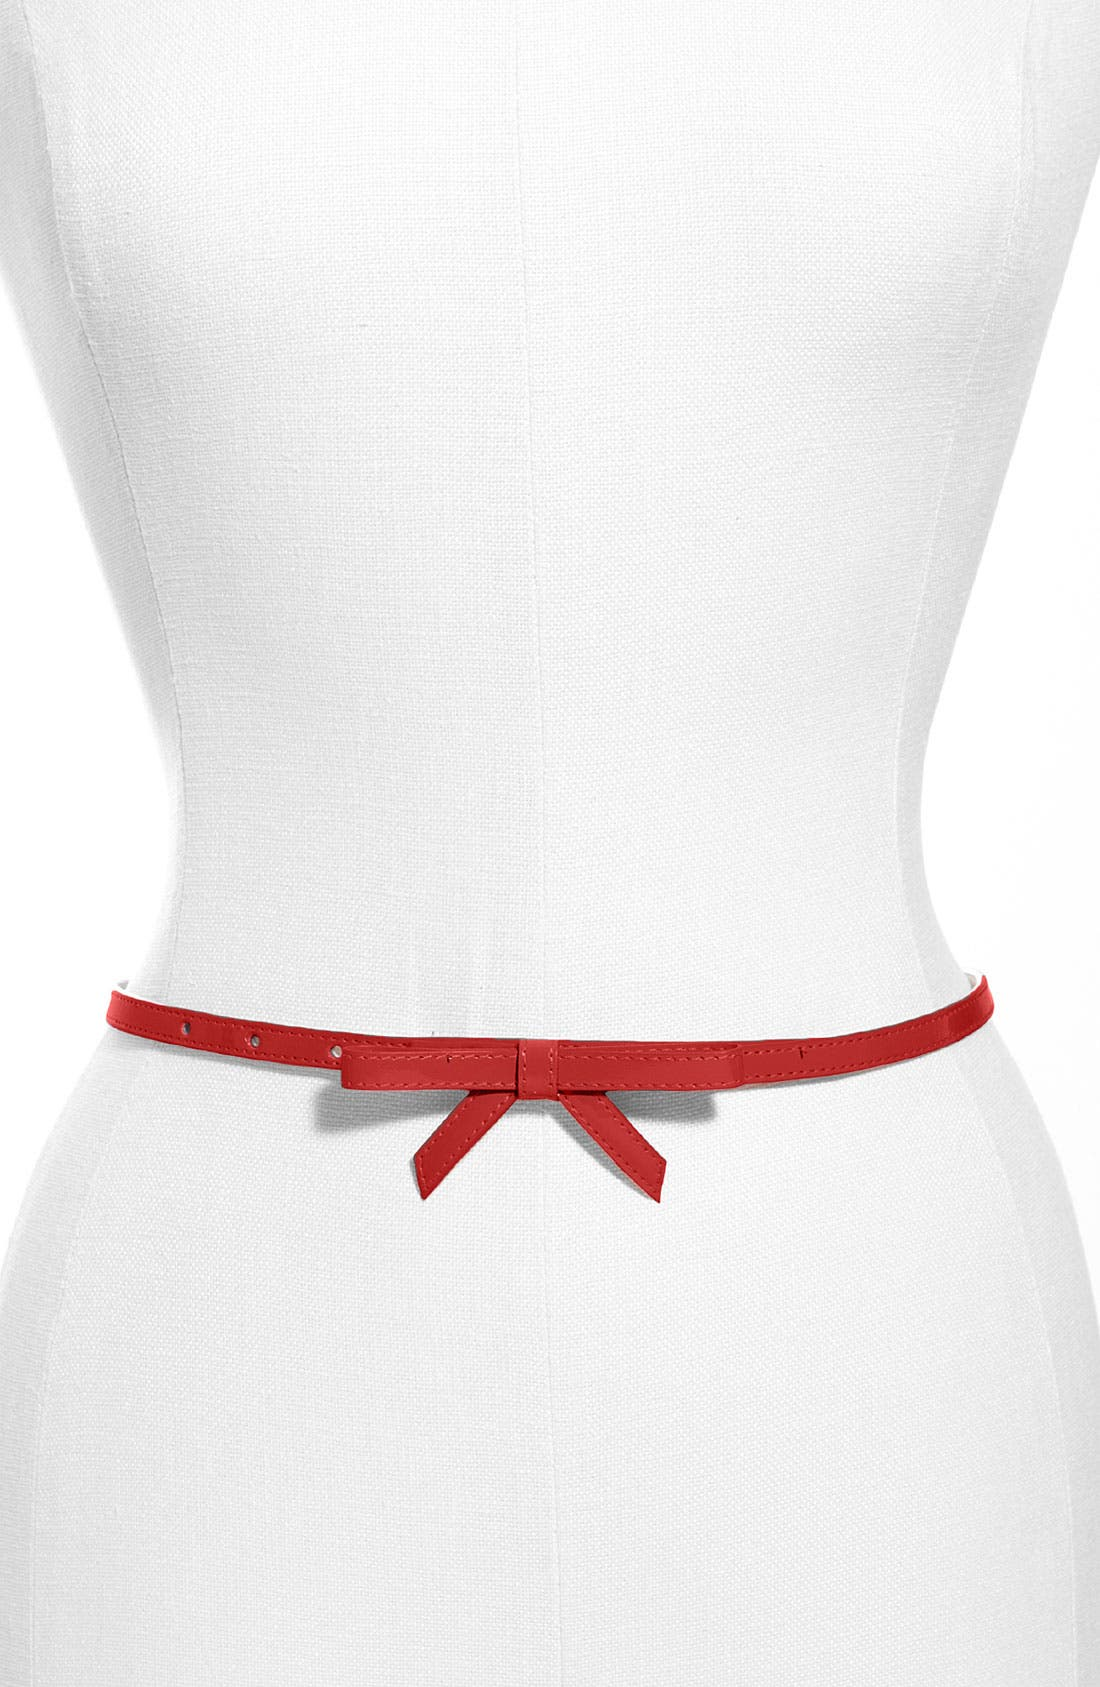 Alternate Image 1 Selected - Another Line Faux Leather Belt